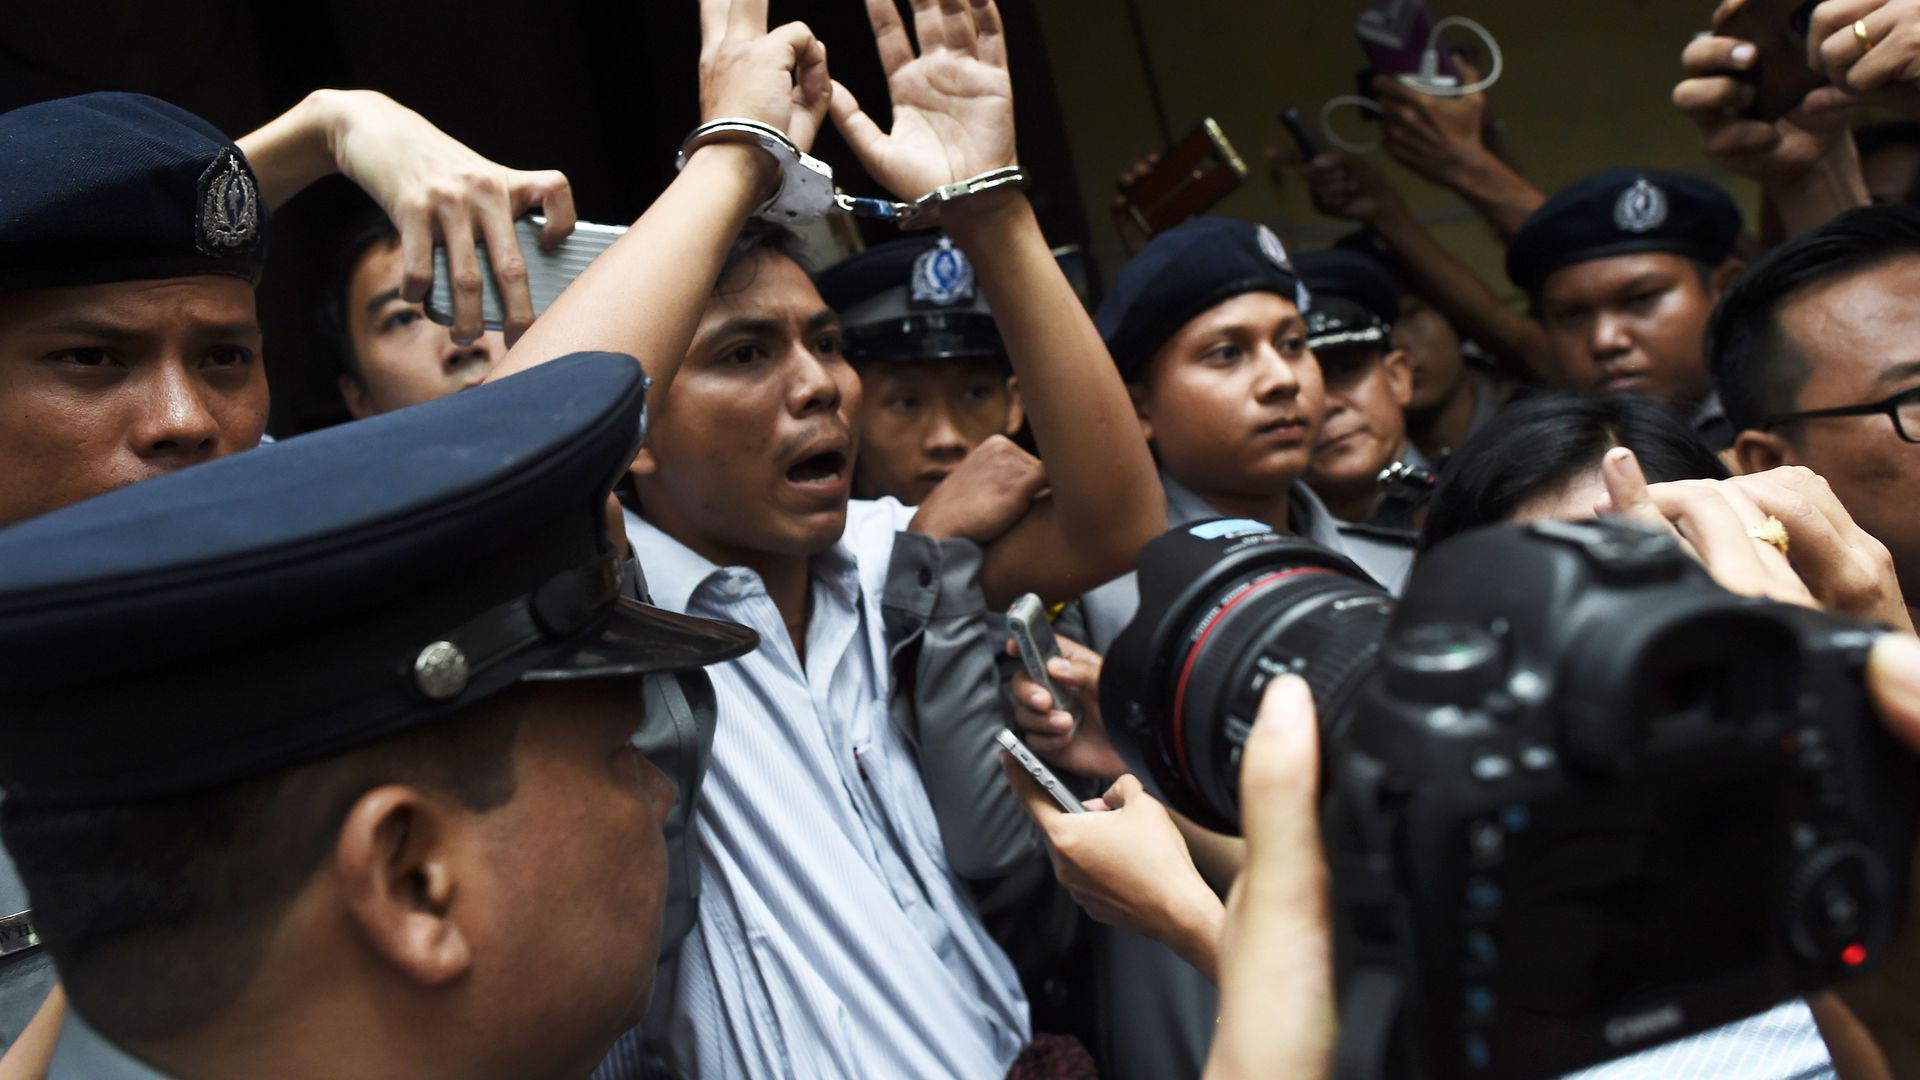 Reuters journalist Kyaw Soe Oo gets escorted by police after being sentenced to seven years in prison